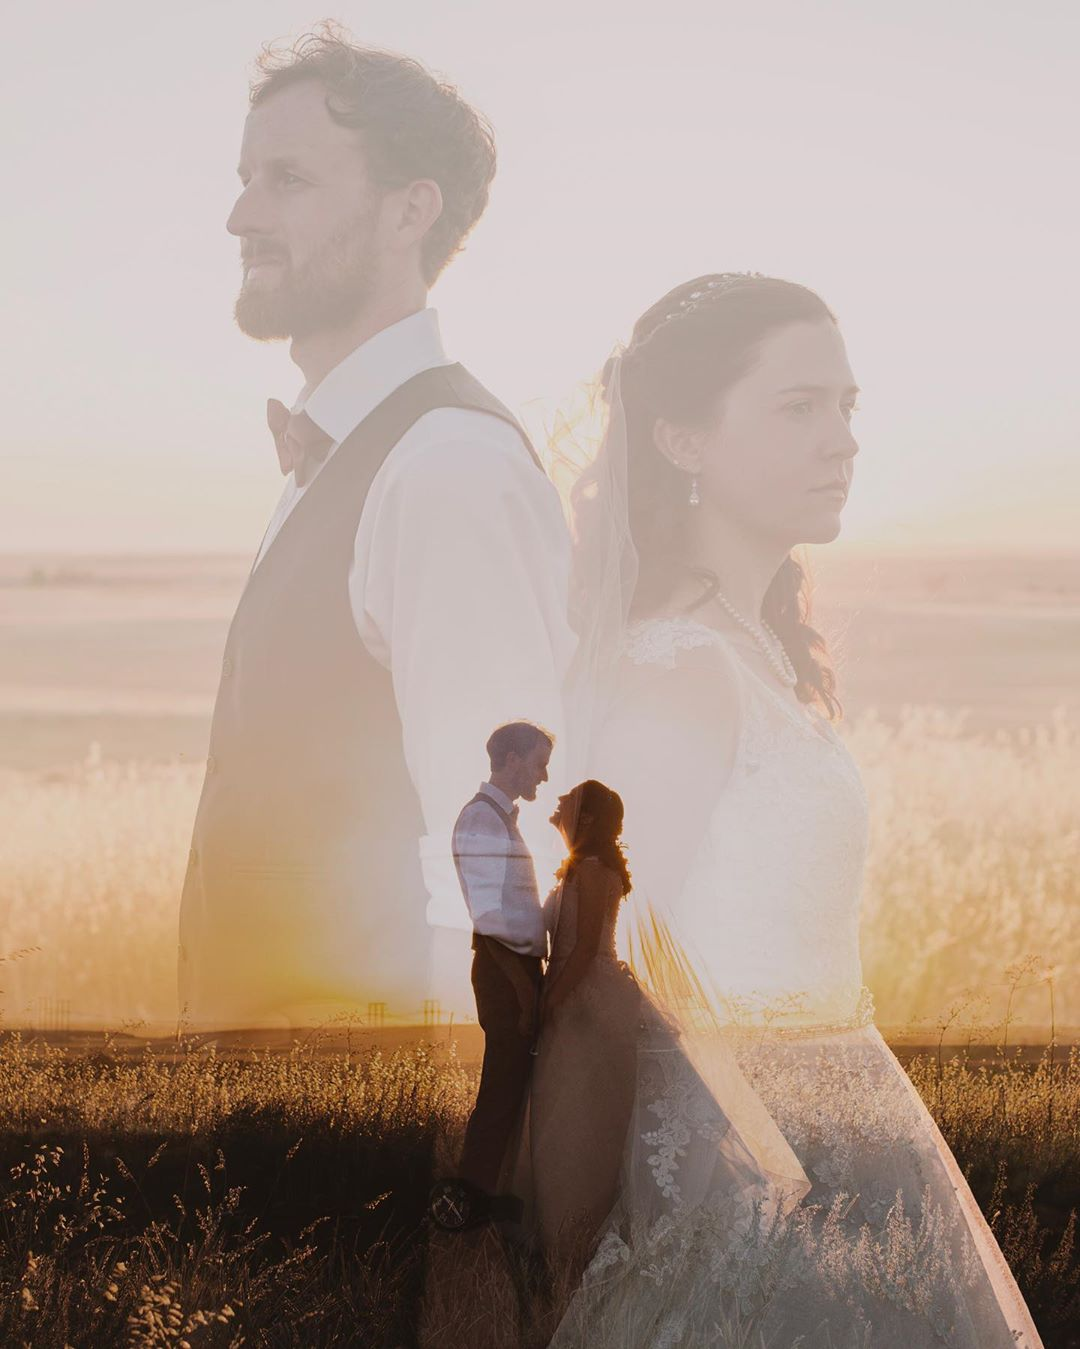 Double exposure photograph of a bride and groom posing in a field during the golden hour